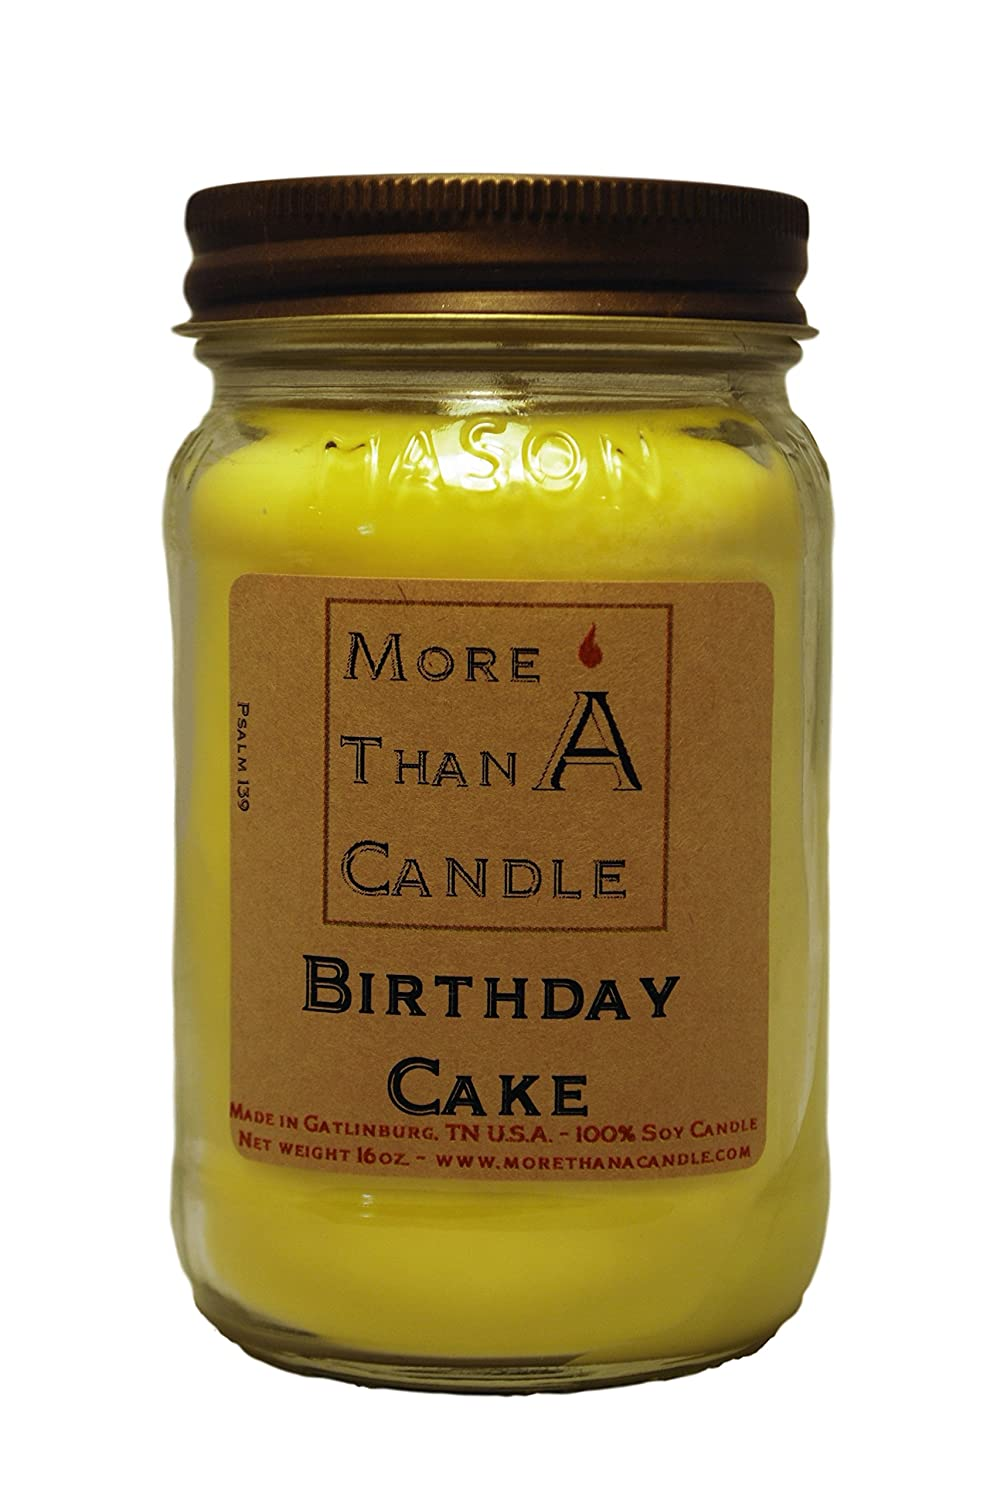 More Than A Candle 16 oz Mason Jar Soy Candle - Made in the USA Birthday Cake